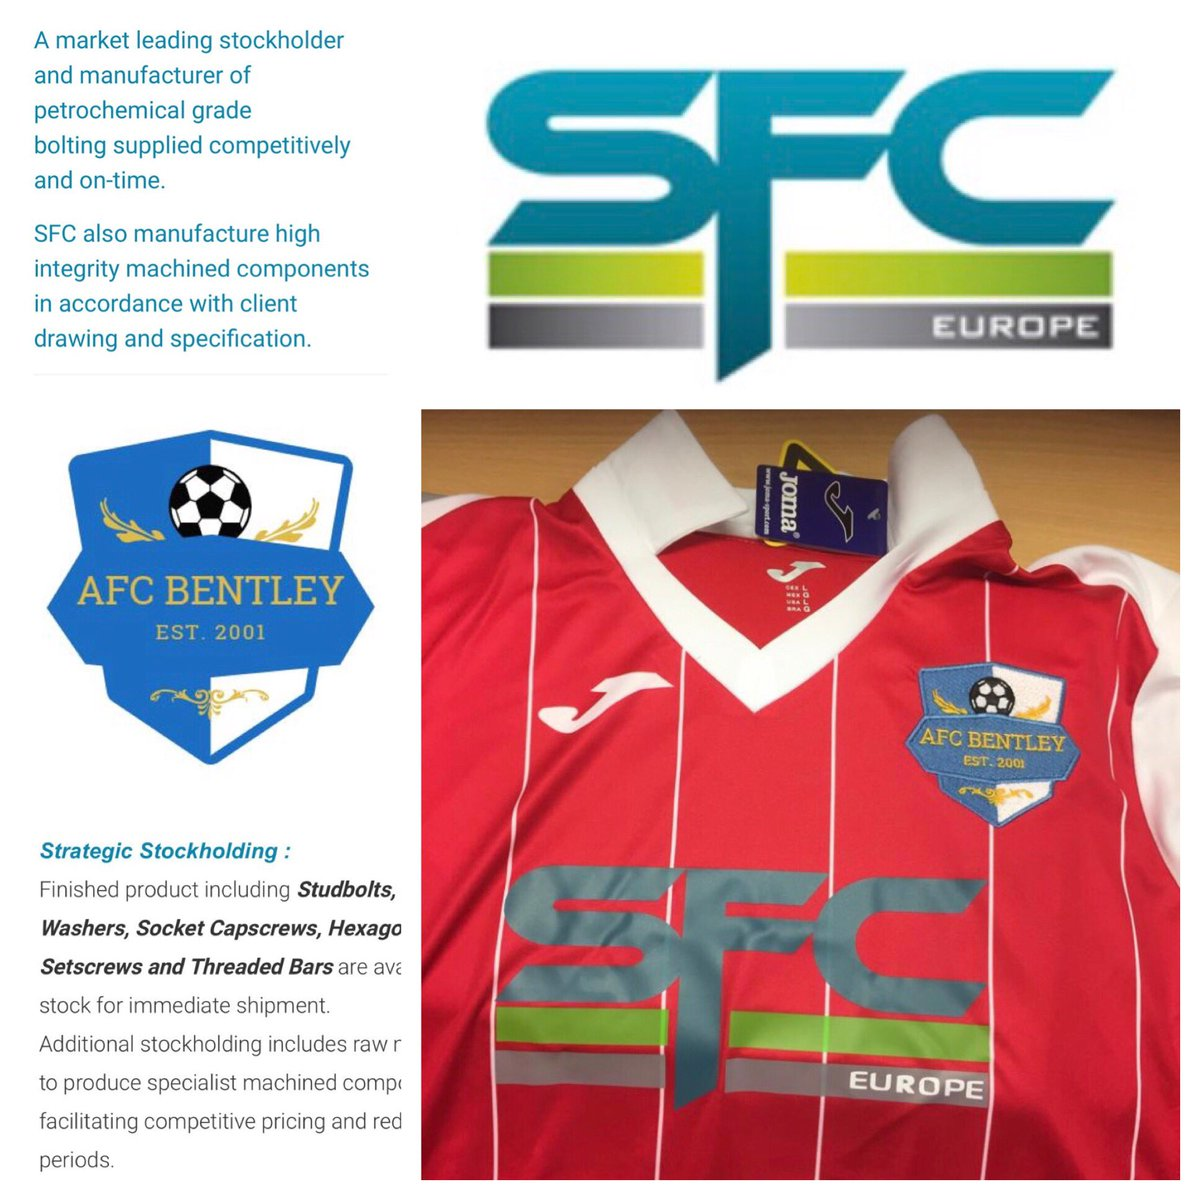 988b1f2e4 Big thank you to our new away kit sponsor  SFCLtd the market leader in  stockholder and manufacturer of petrochemical grade bolting Sfc Europe Ltd  E MAIL  ...